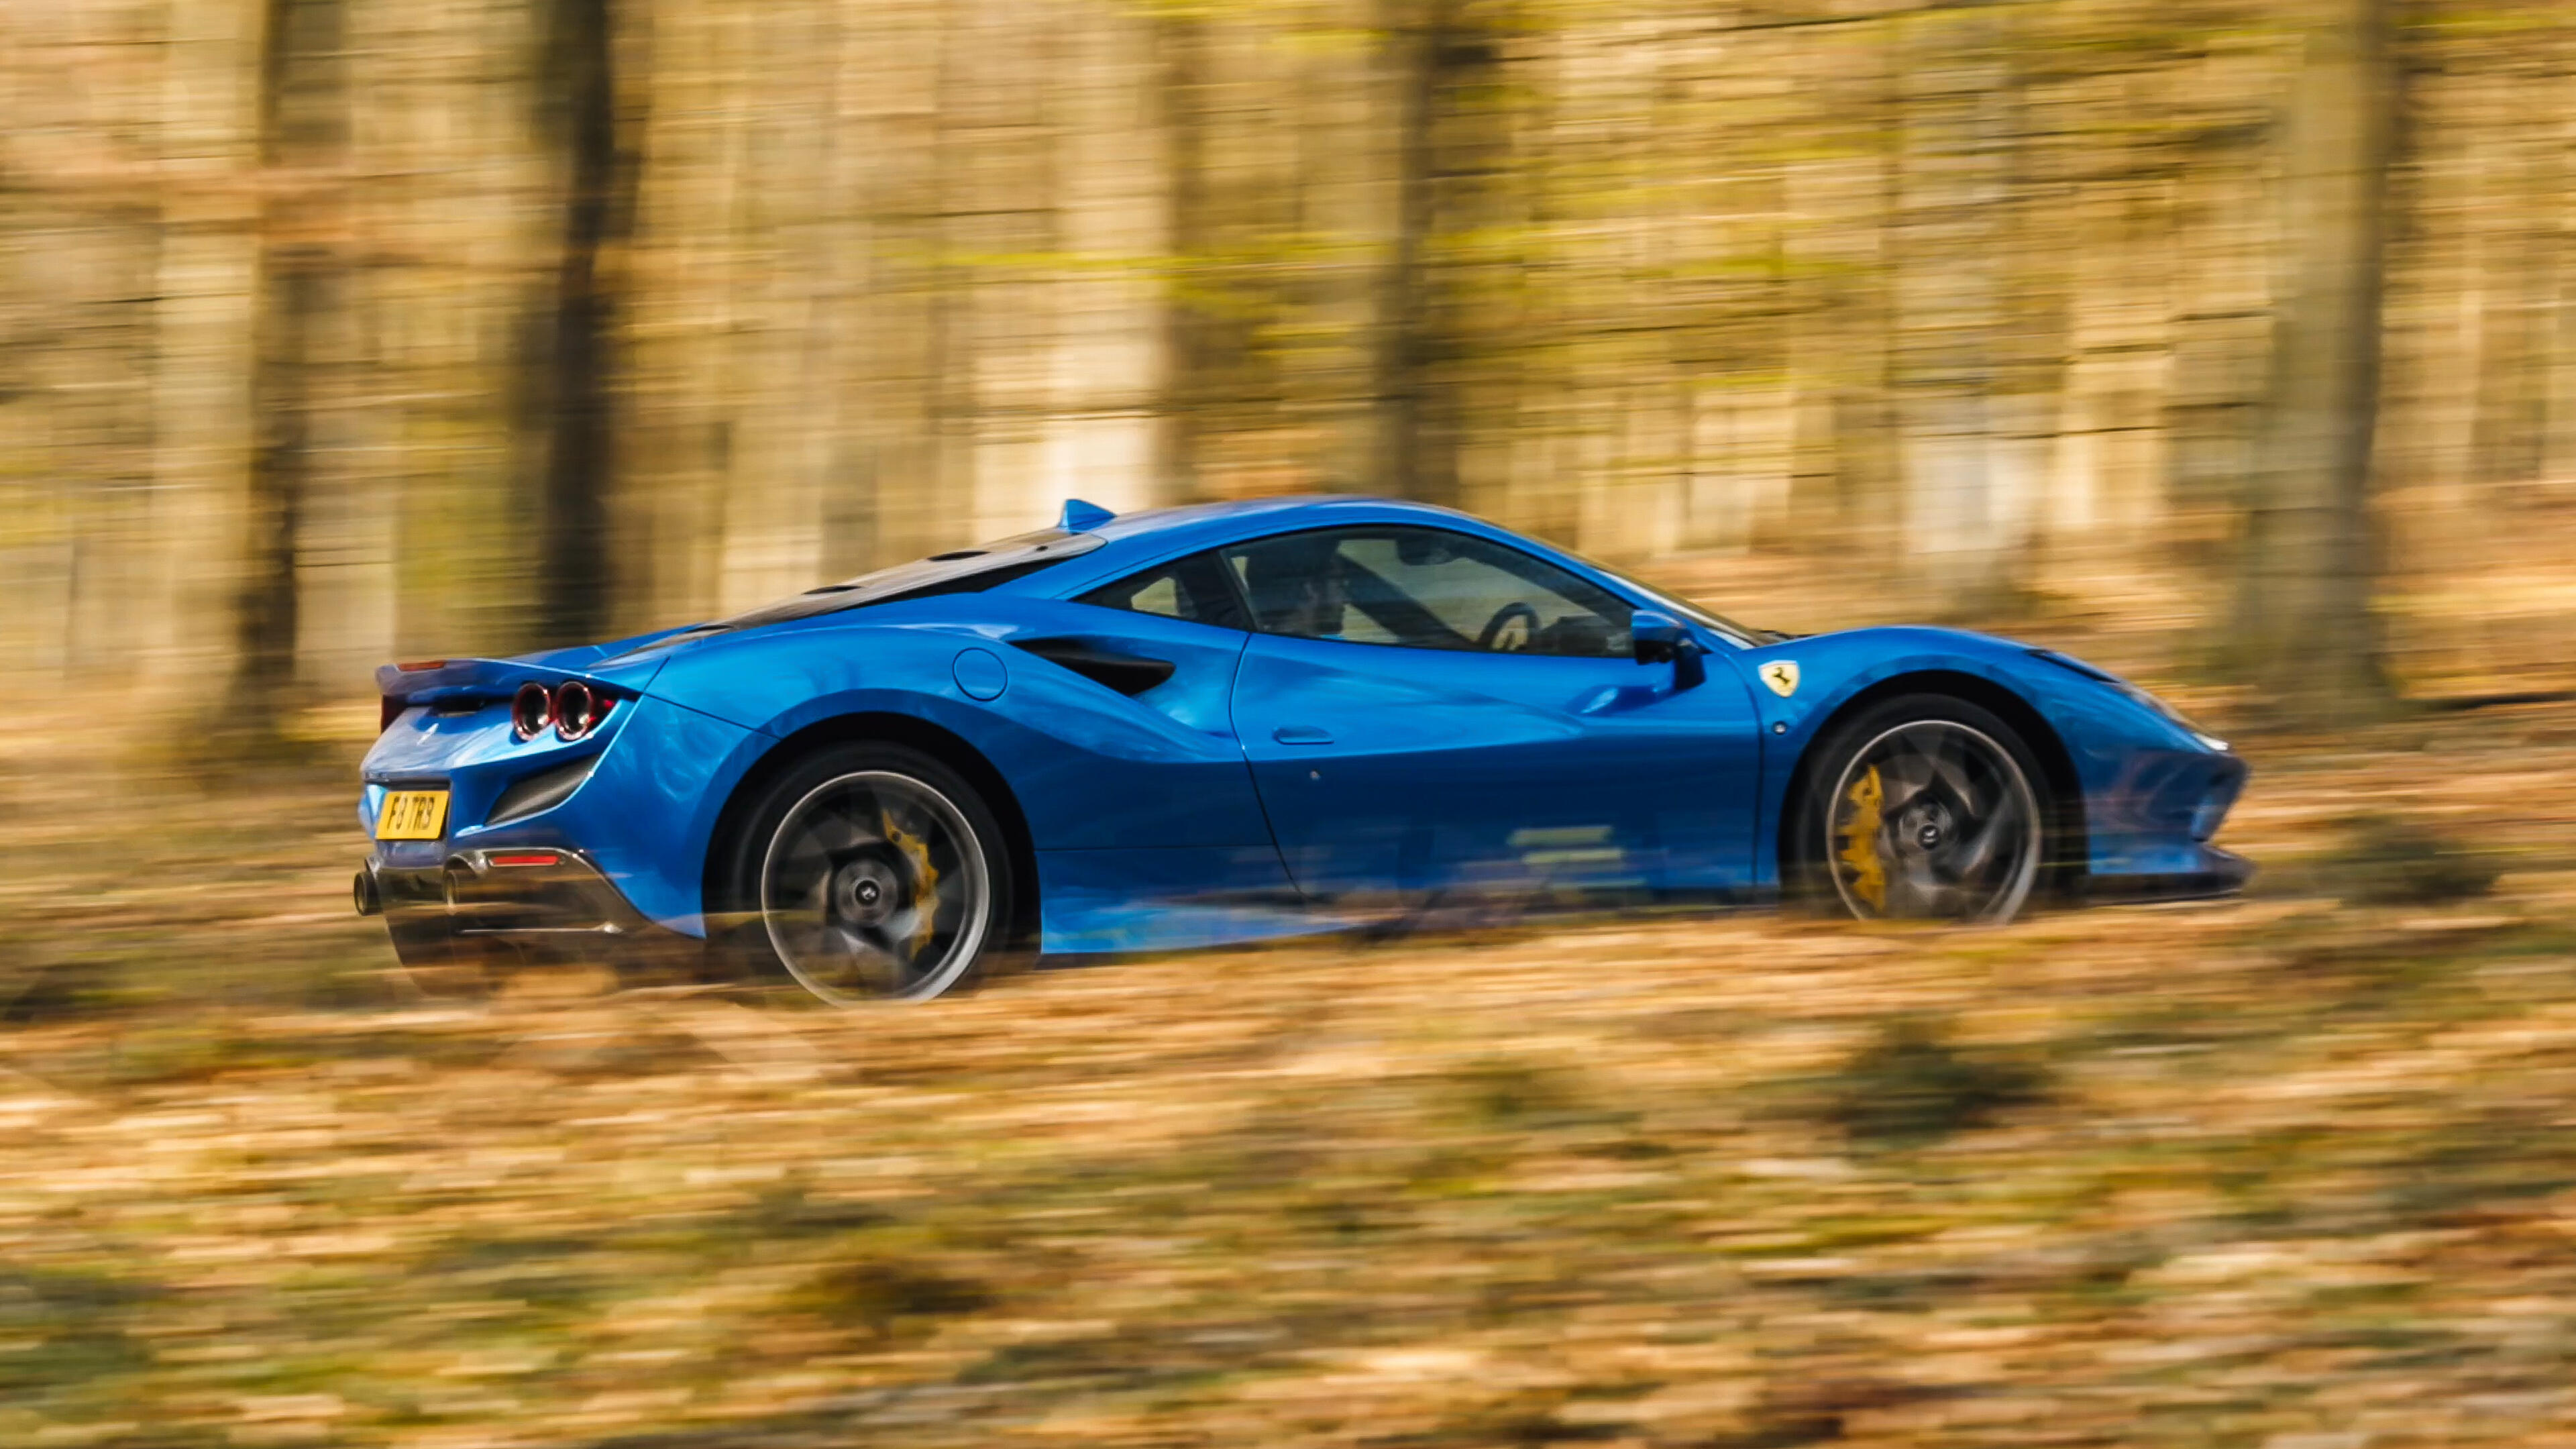 Video: Ferrari F8 Tributo: An homage to the paddle shift